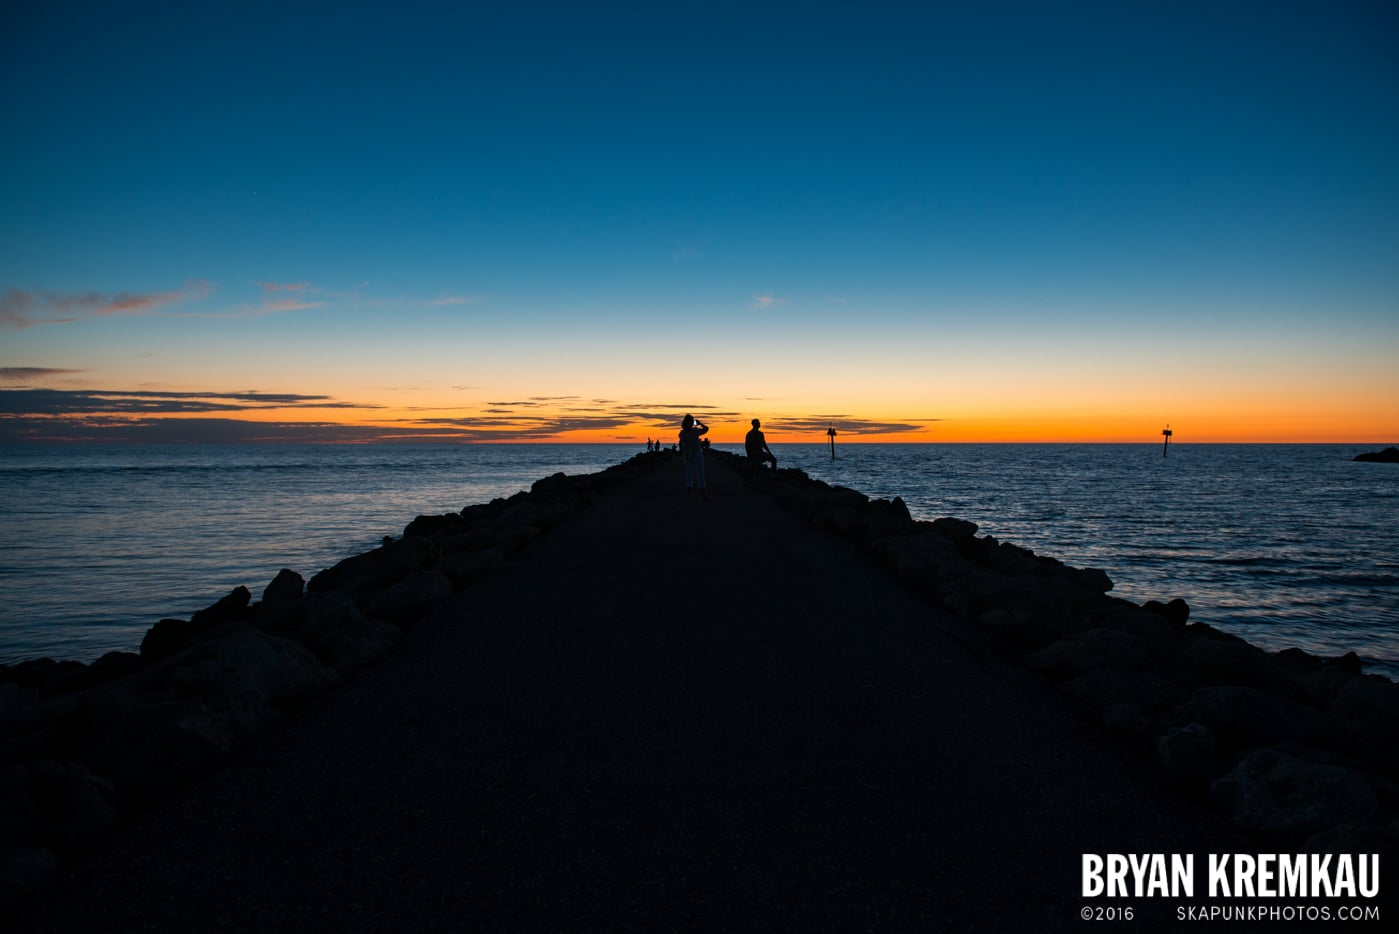 Sunsets, Astrophotography & Birds @ Venice, Florida - 10.25.14 - 11.5.14 (121)